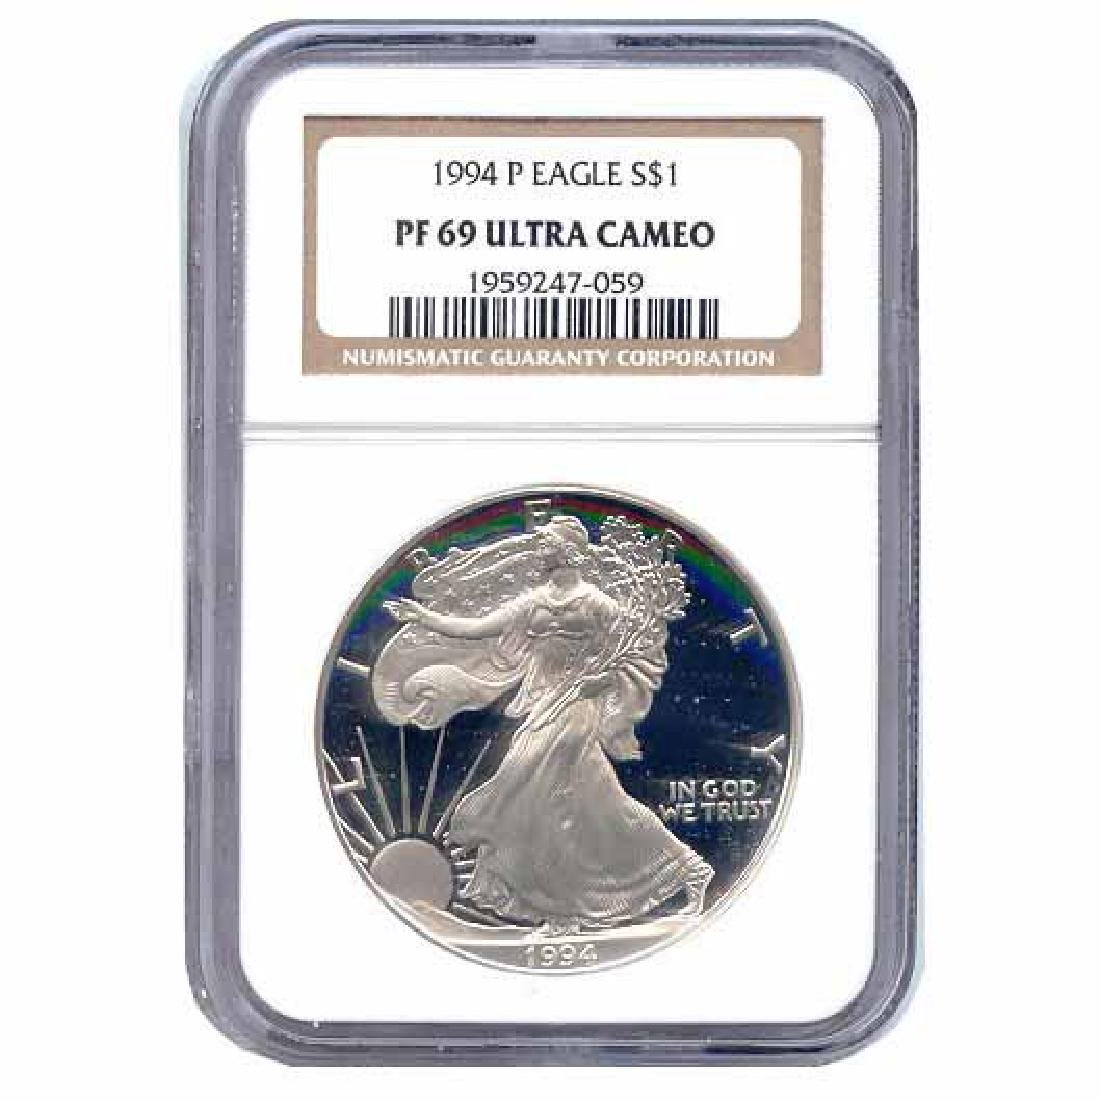 Certified Proof Silver Eagle PF69 1994